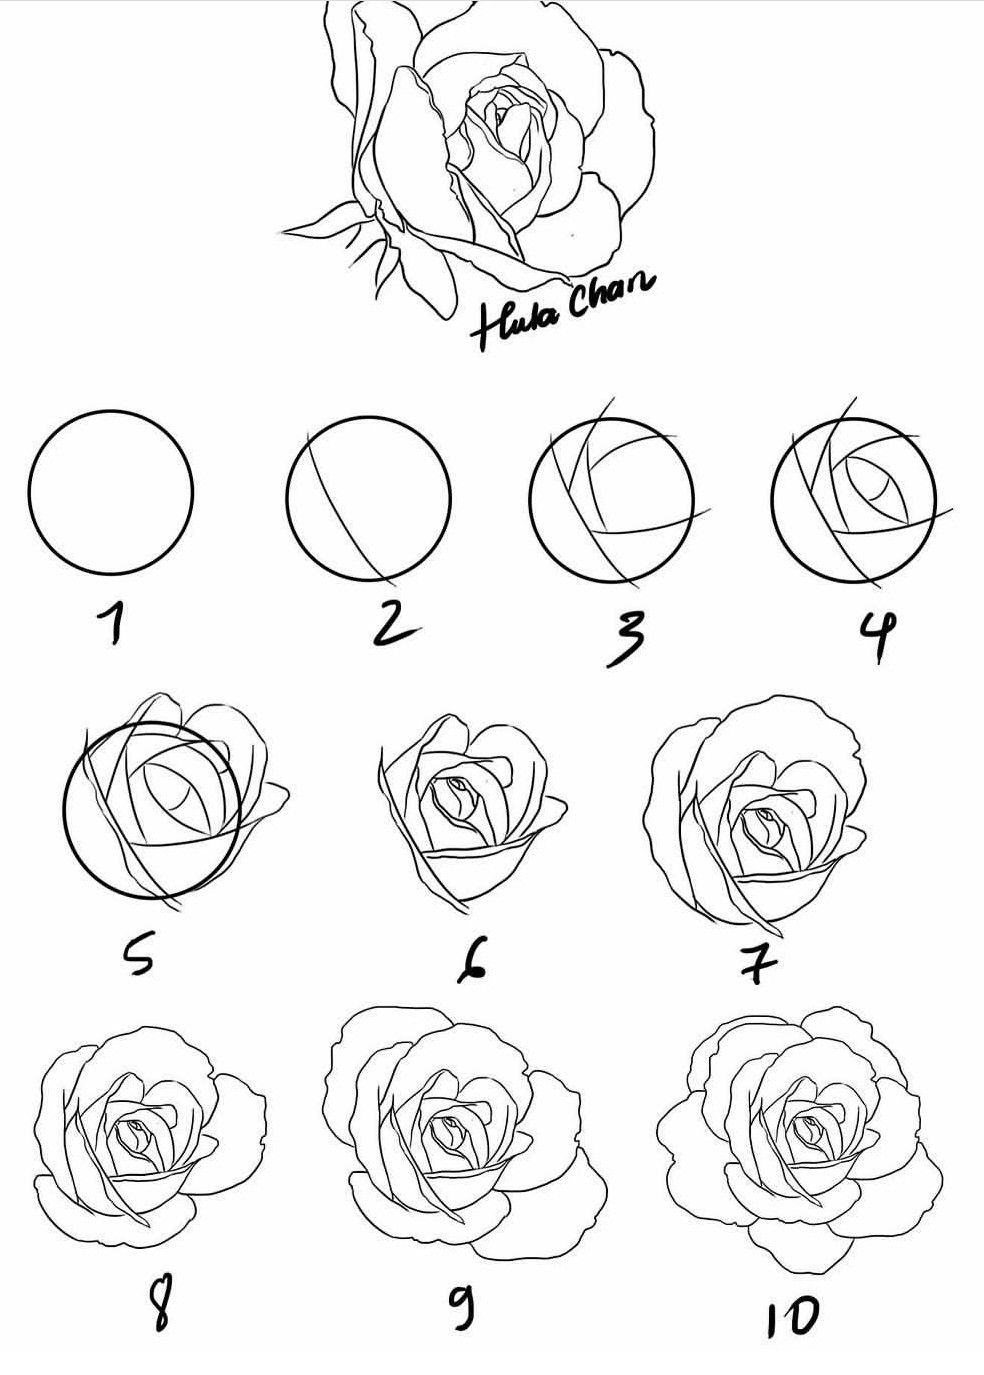 Pictures Of Roses To Draw : pictures, roses, Roses, Drawing,, Flower, Drawing